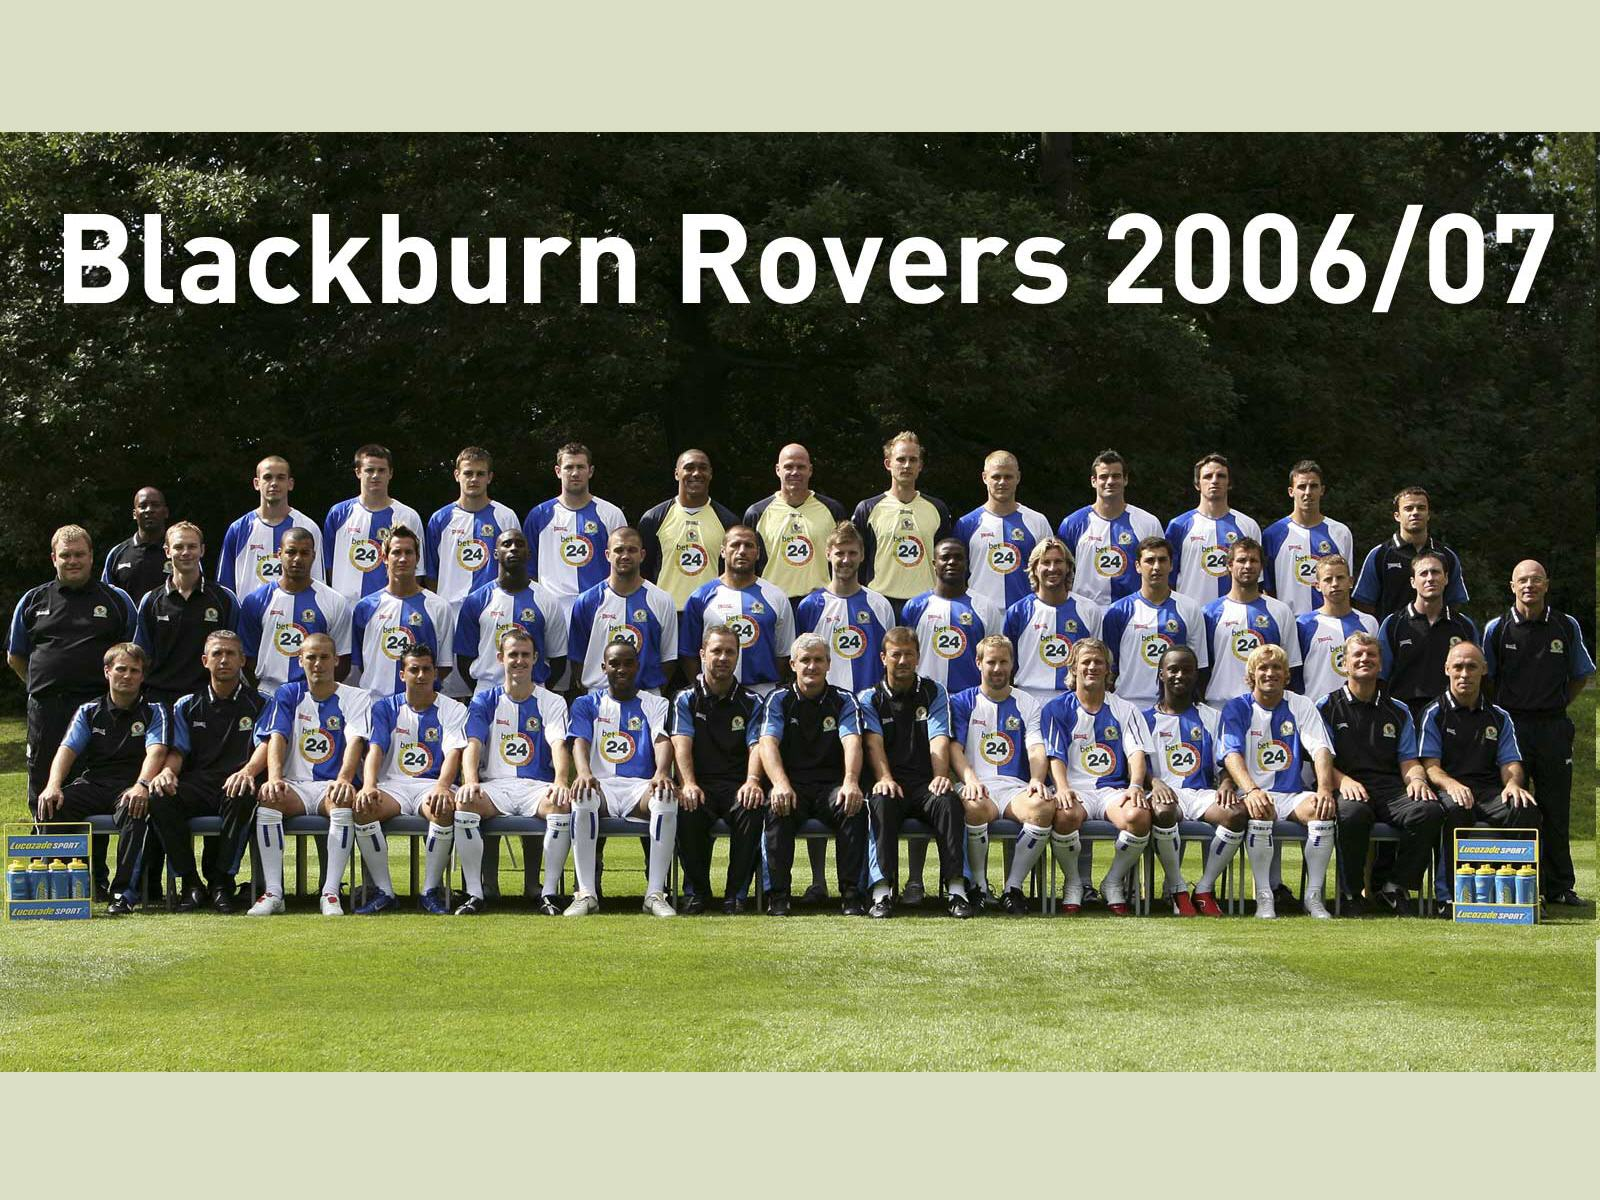 blackburnrovers3.jpg